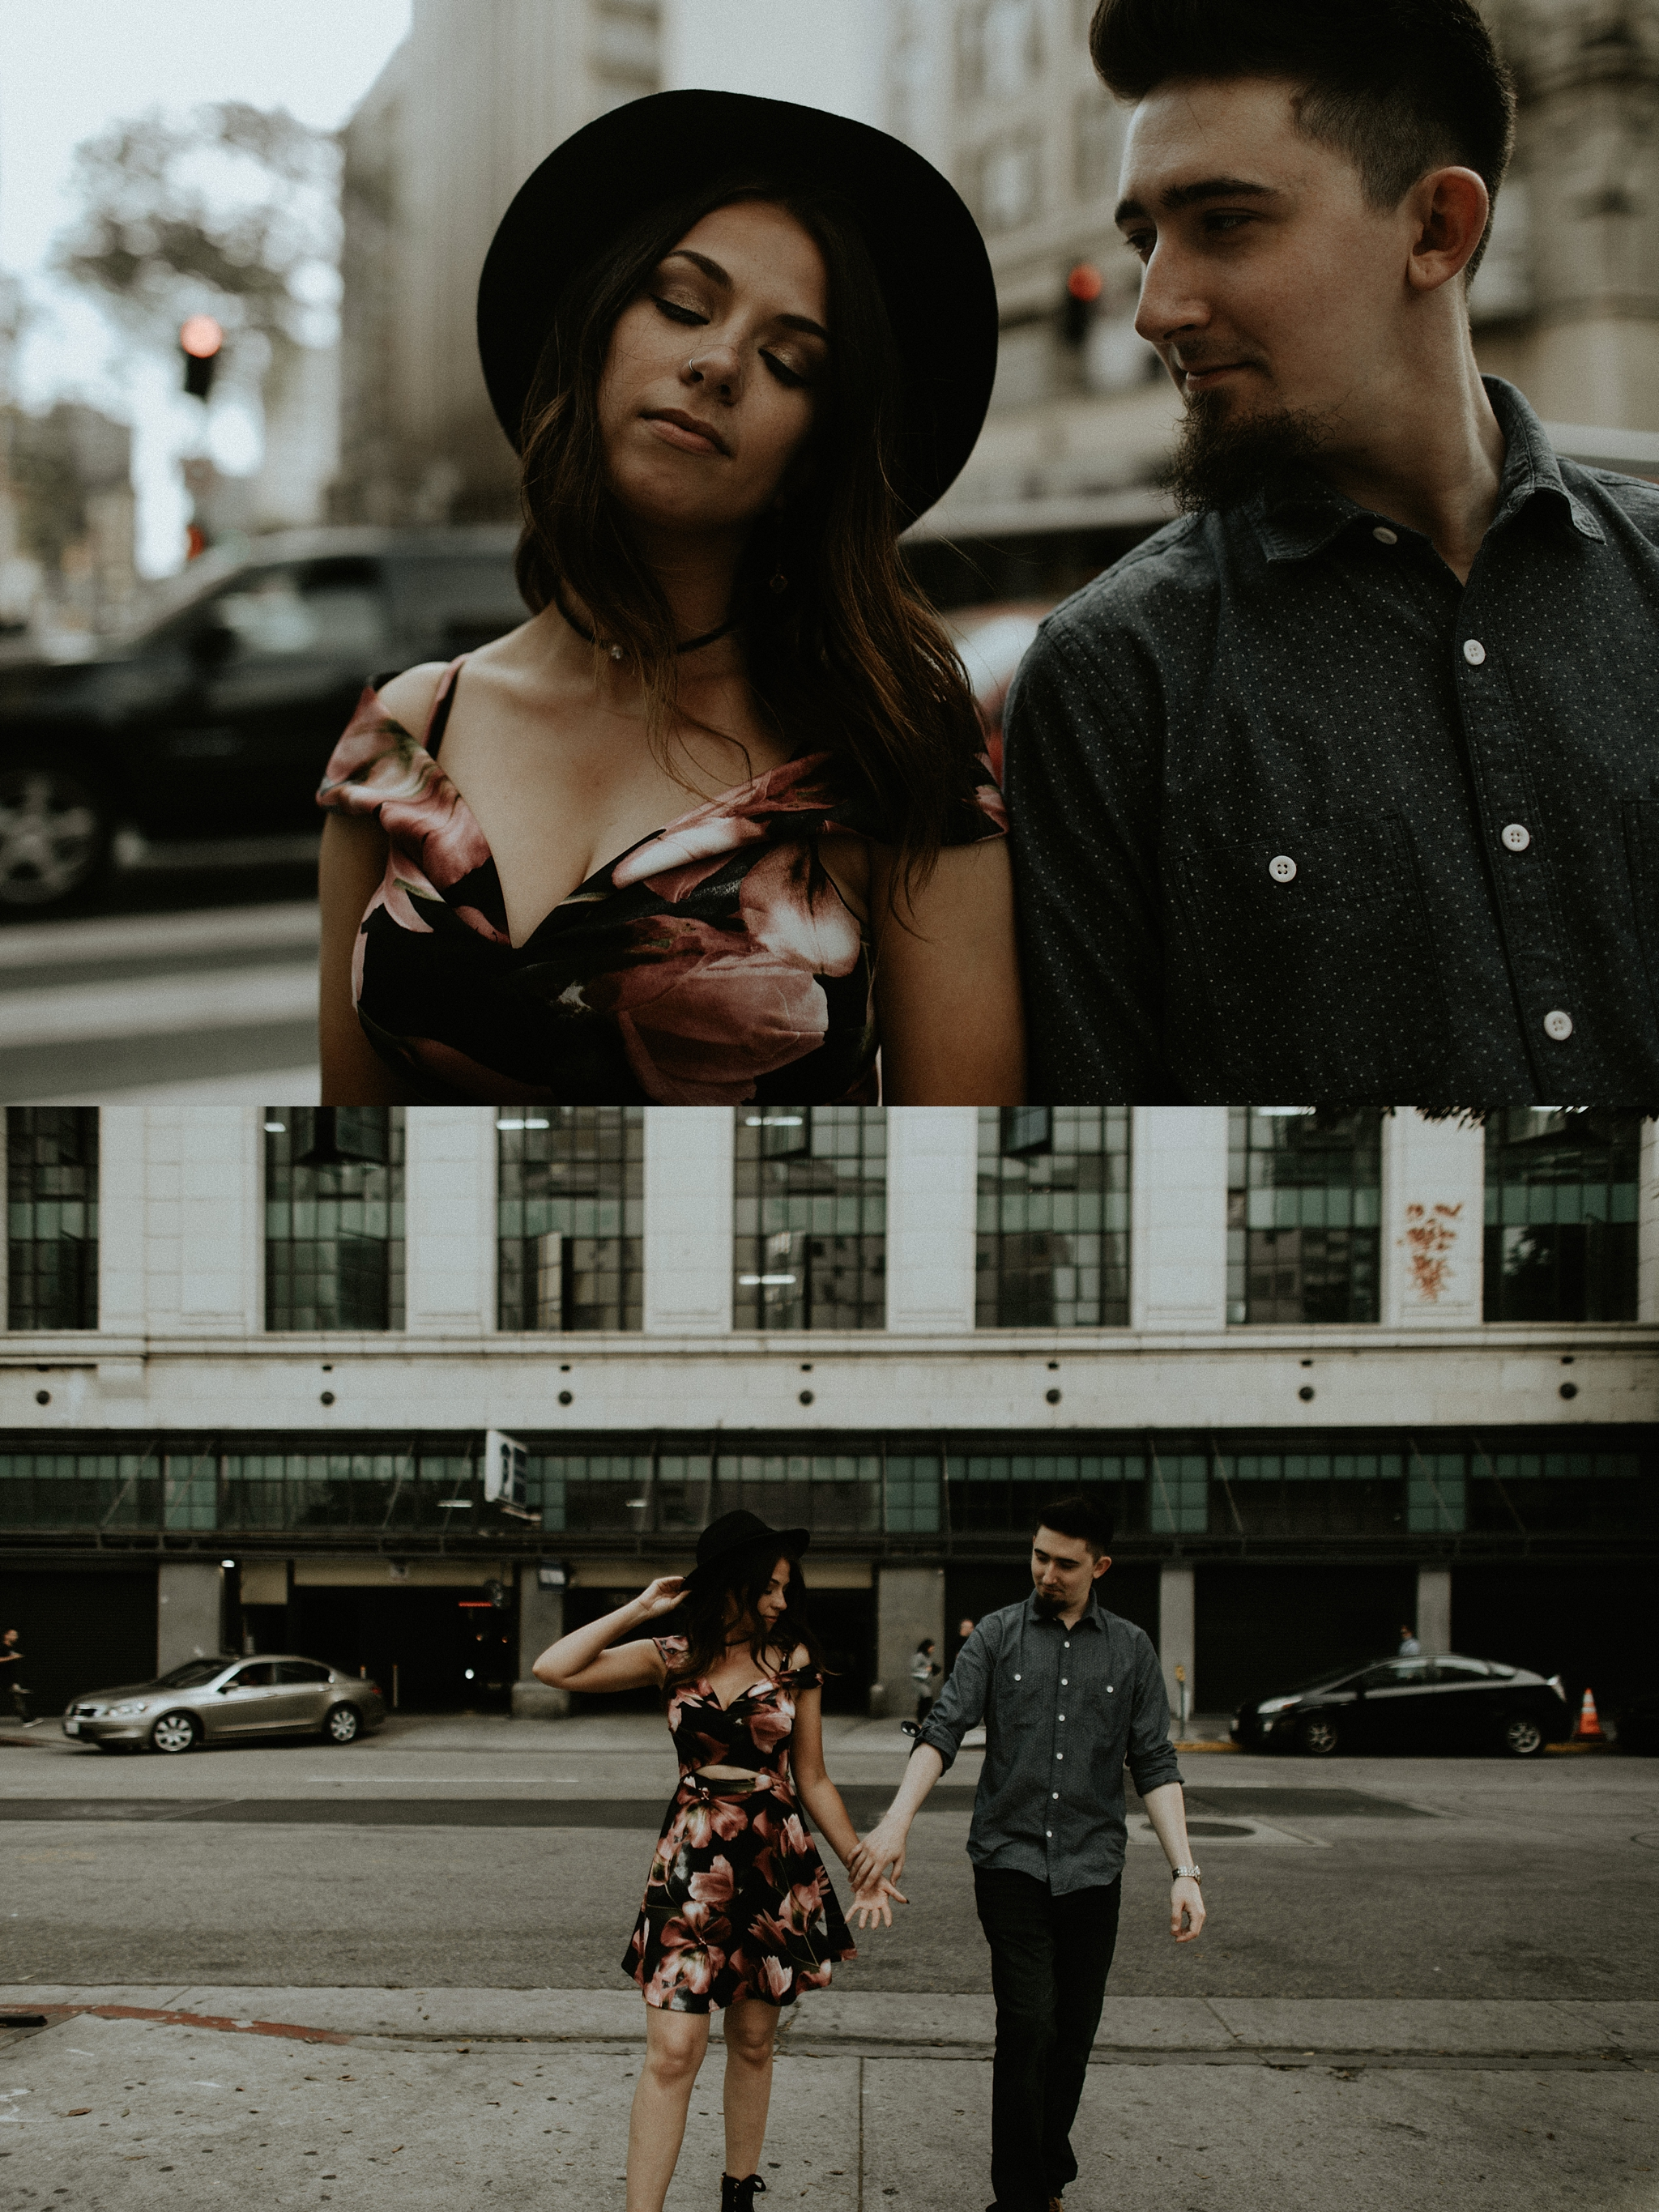 trinjensen photography, DTLA Engagement Session in Los Angeles, Southern California_0007.jpg